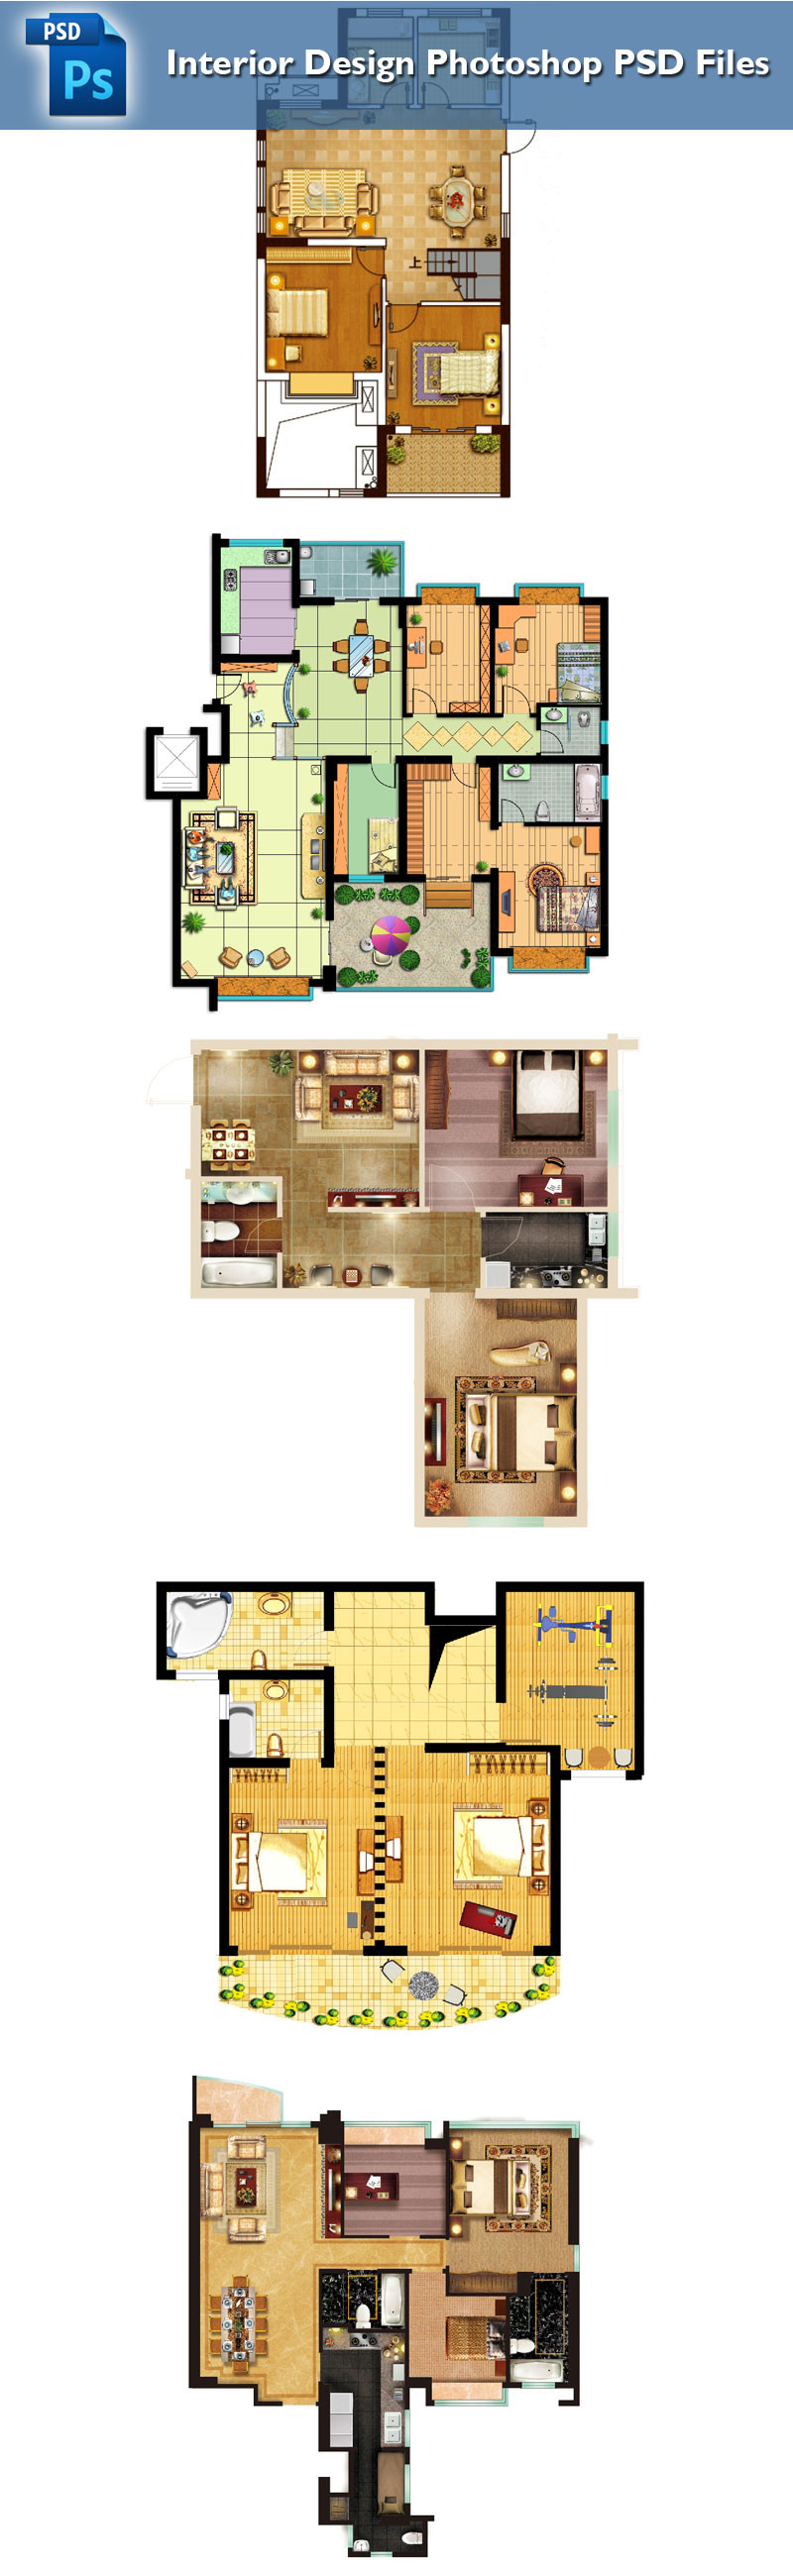 15 Types of Interior Design Layouts PSD Template